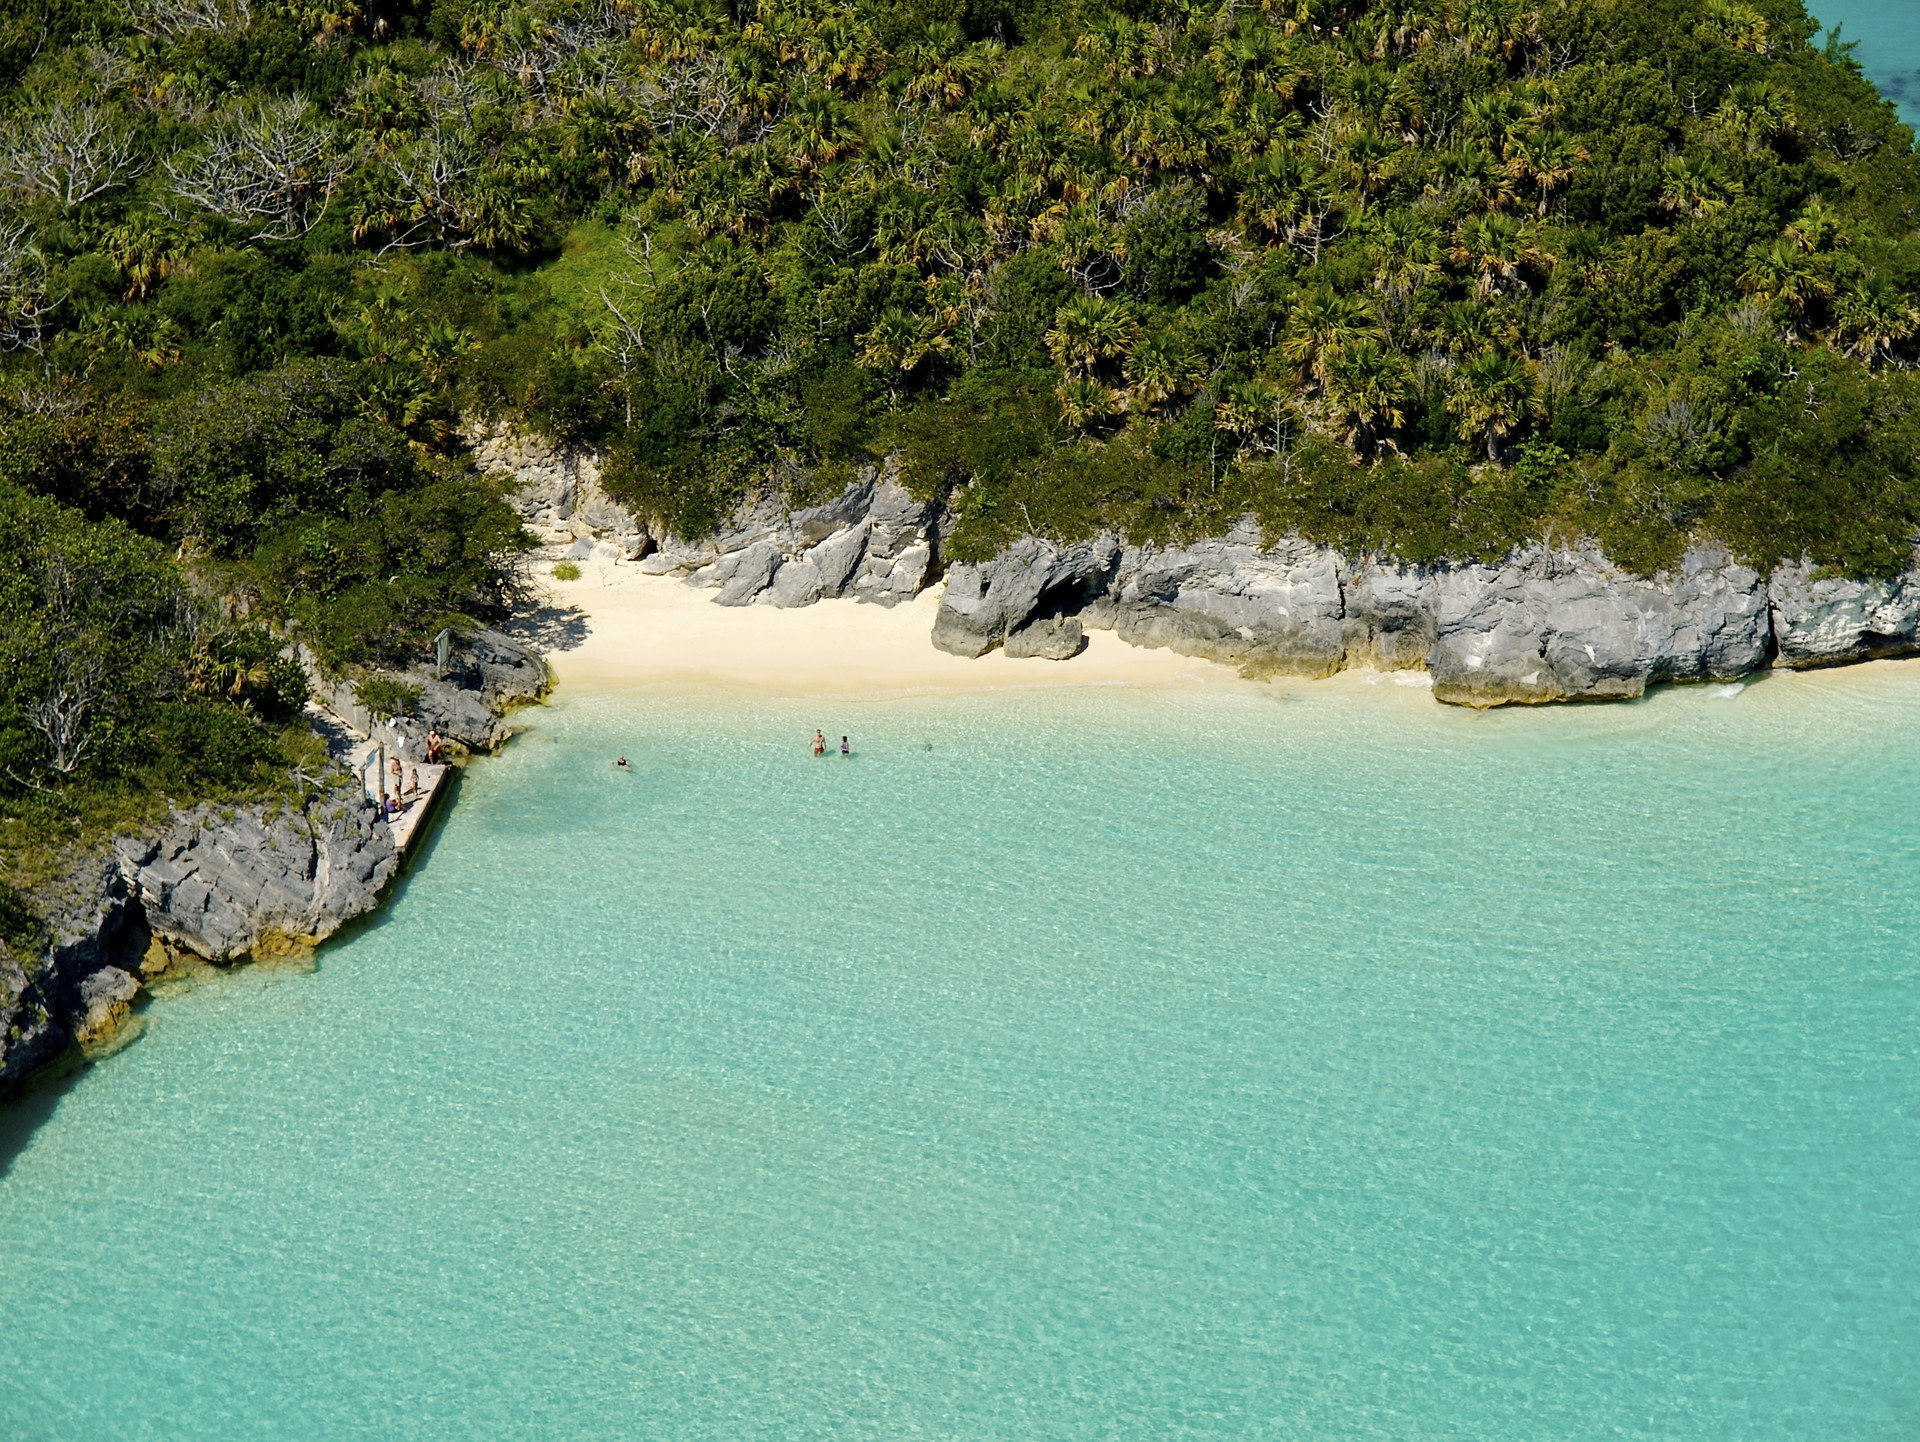 aerial Beach calm clear water Greenery Islands Ocean people remote Rocks sand serene Trip Ideas Tropical turquoise white sands tree outdoor water body of water Sea shore Coast vacation River bay reservoir Lake cove terrain plant